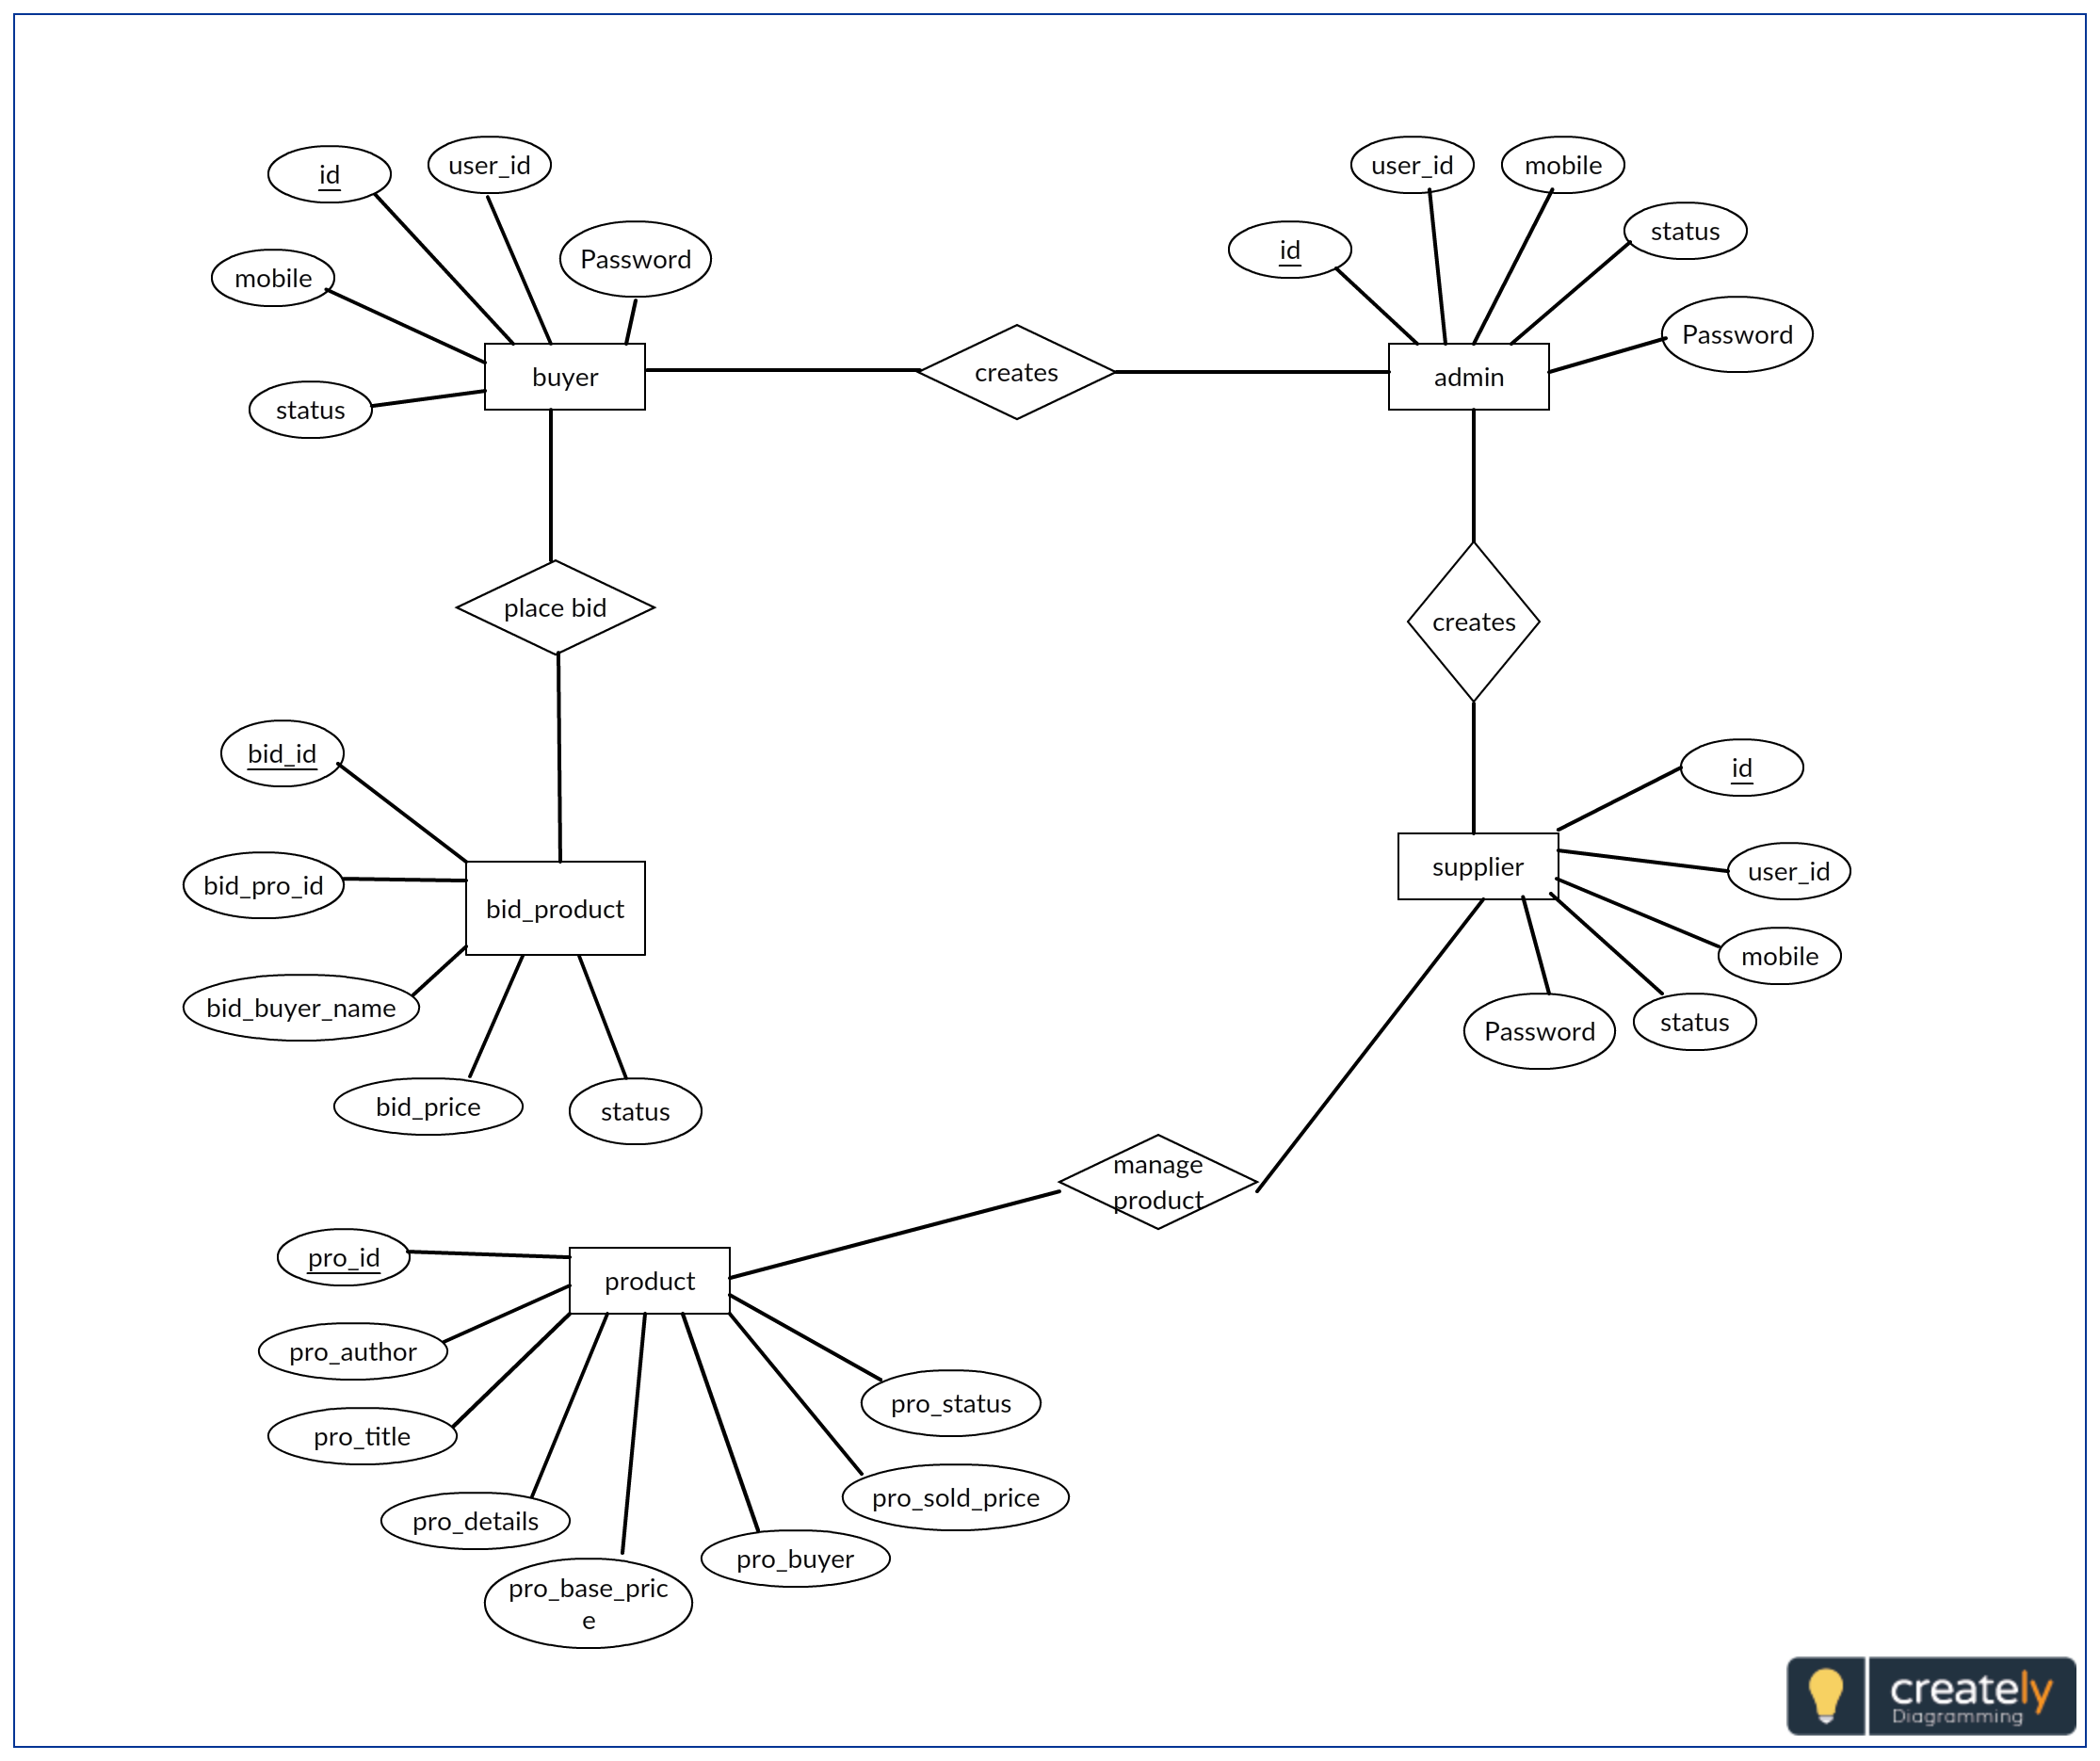 Pin By Creately On Entity Relationship Diagram Templates